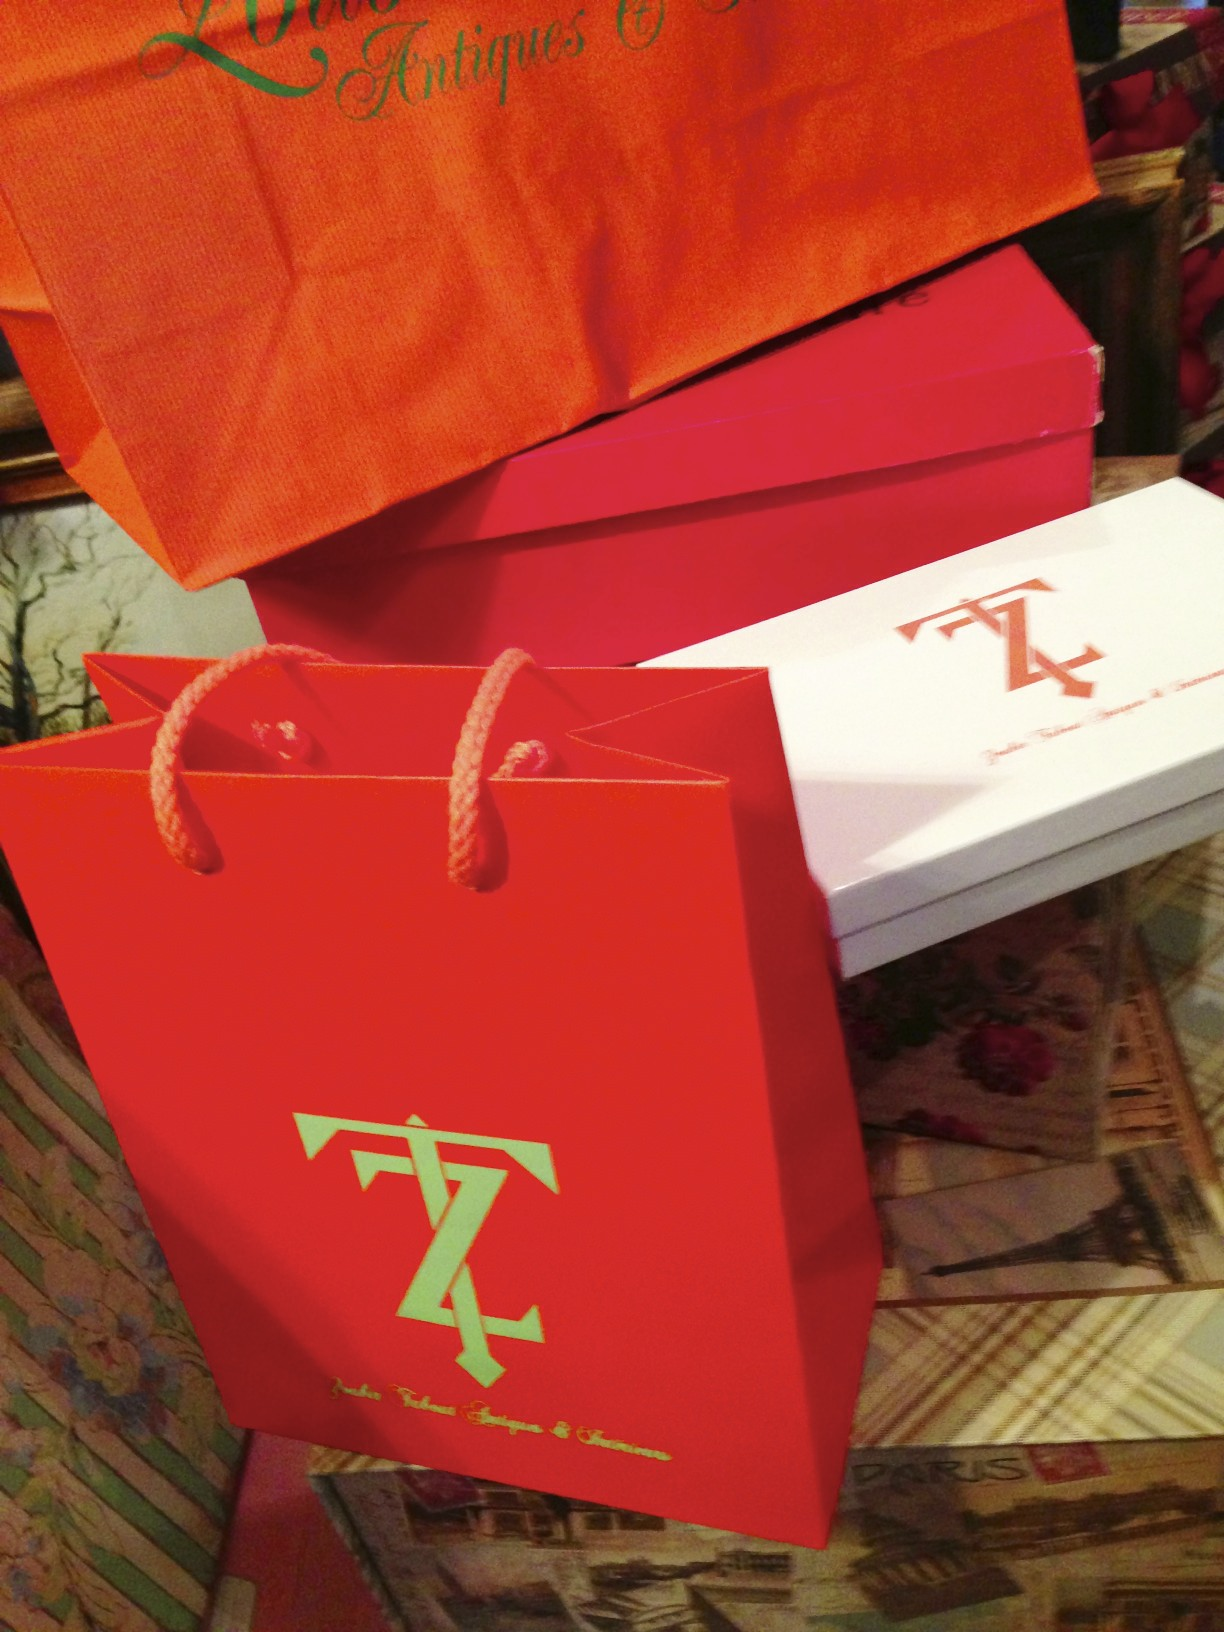 orange boxes and bags